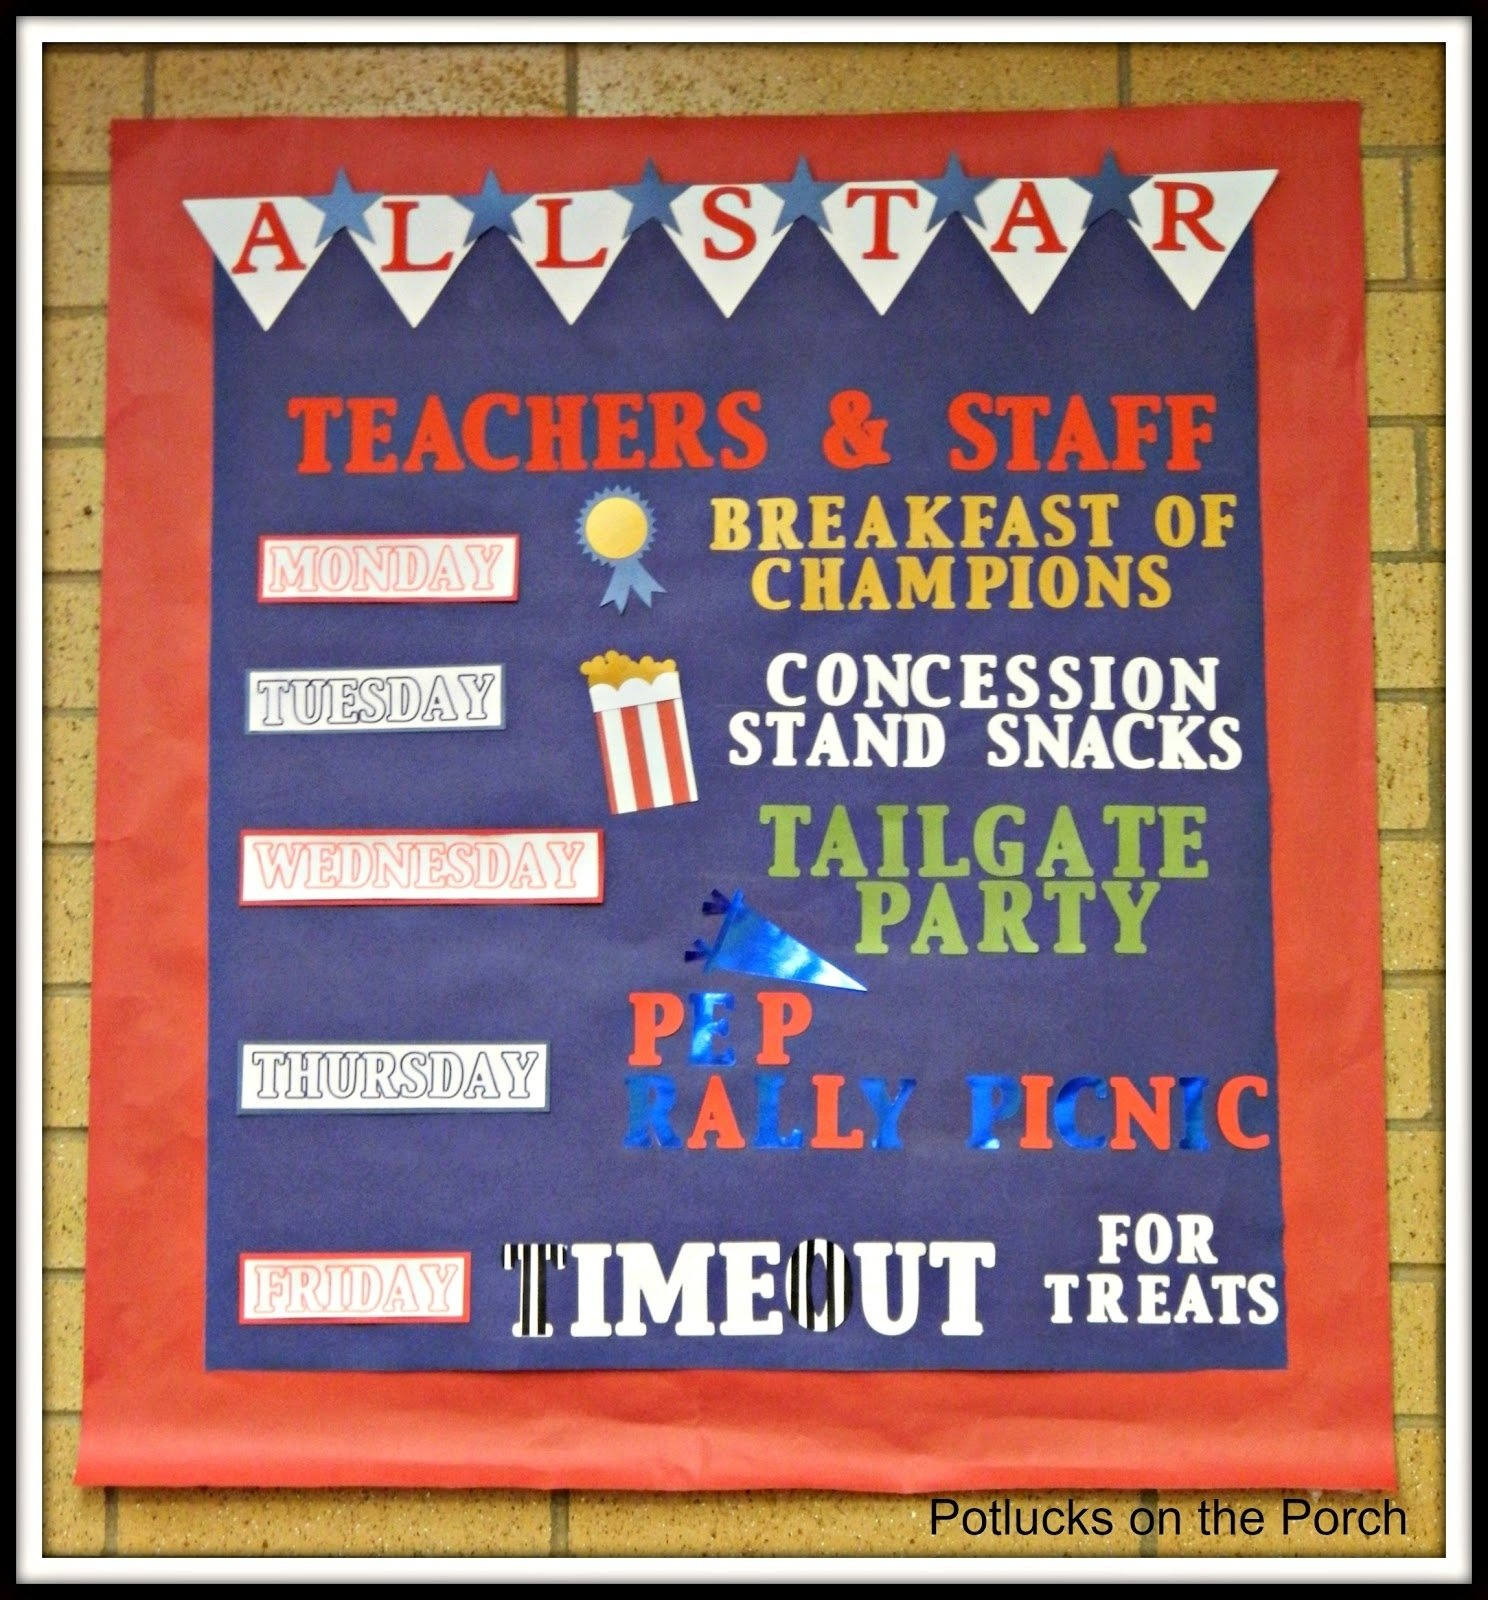 10 Gorgeous Teacher Appreciation Week Theme Ideas potlucks on the porch teacher appreciation week all star teachers